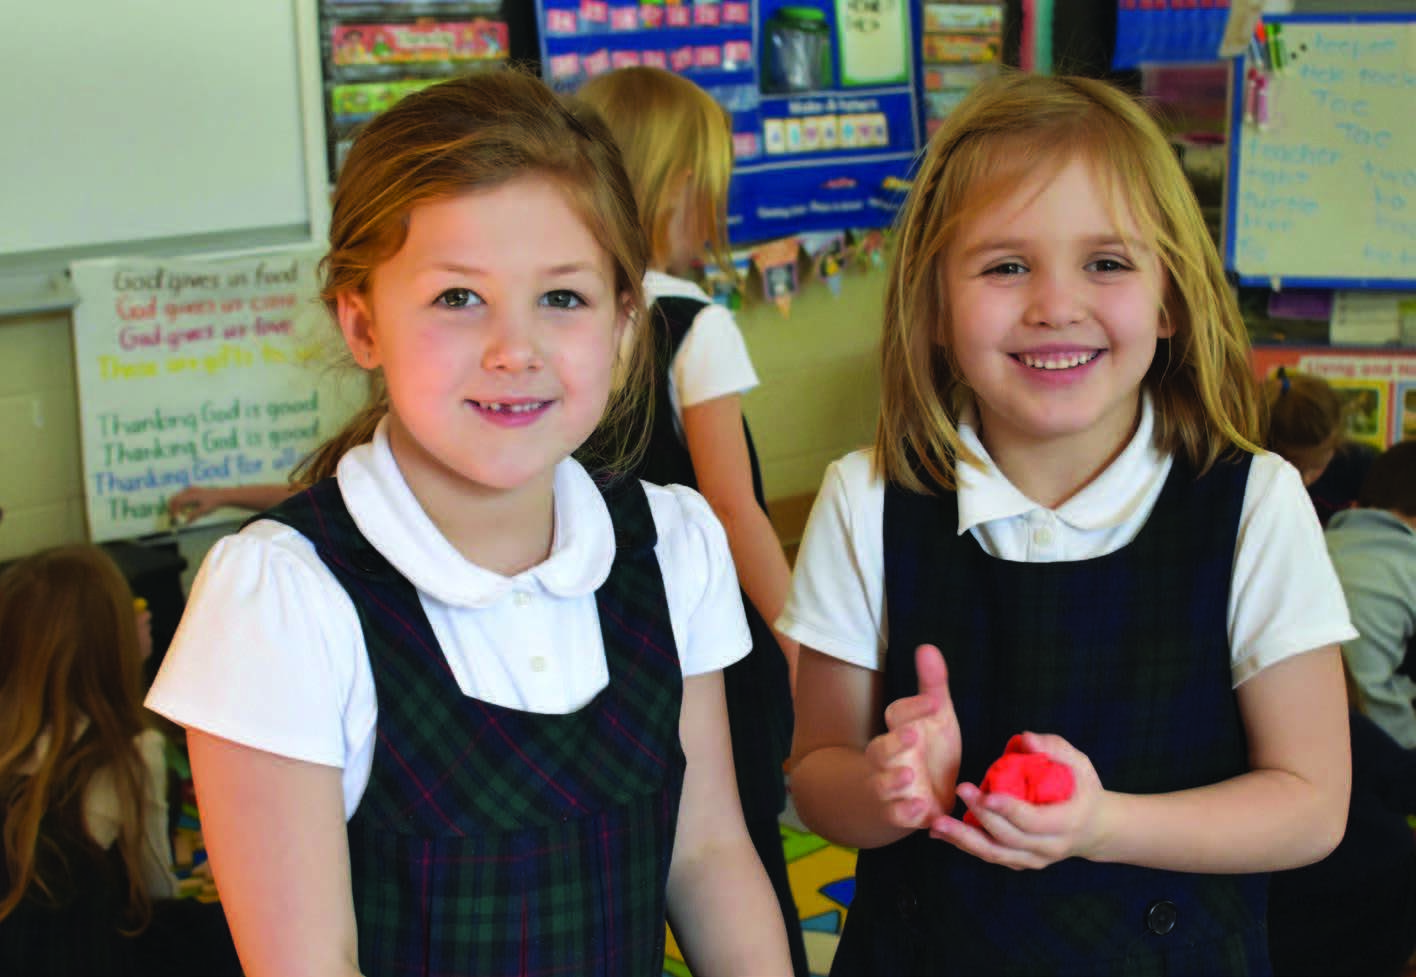 two young female students, one with red play-dough